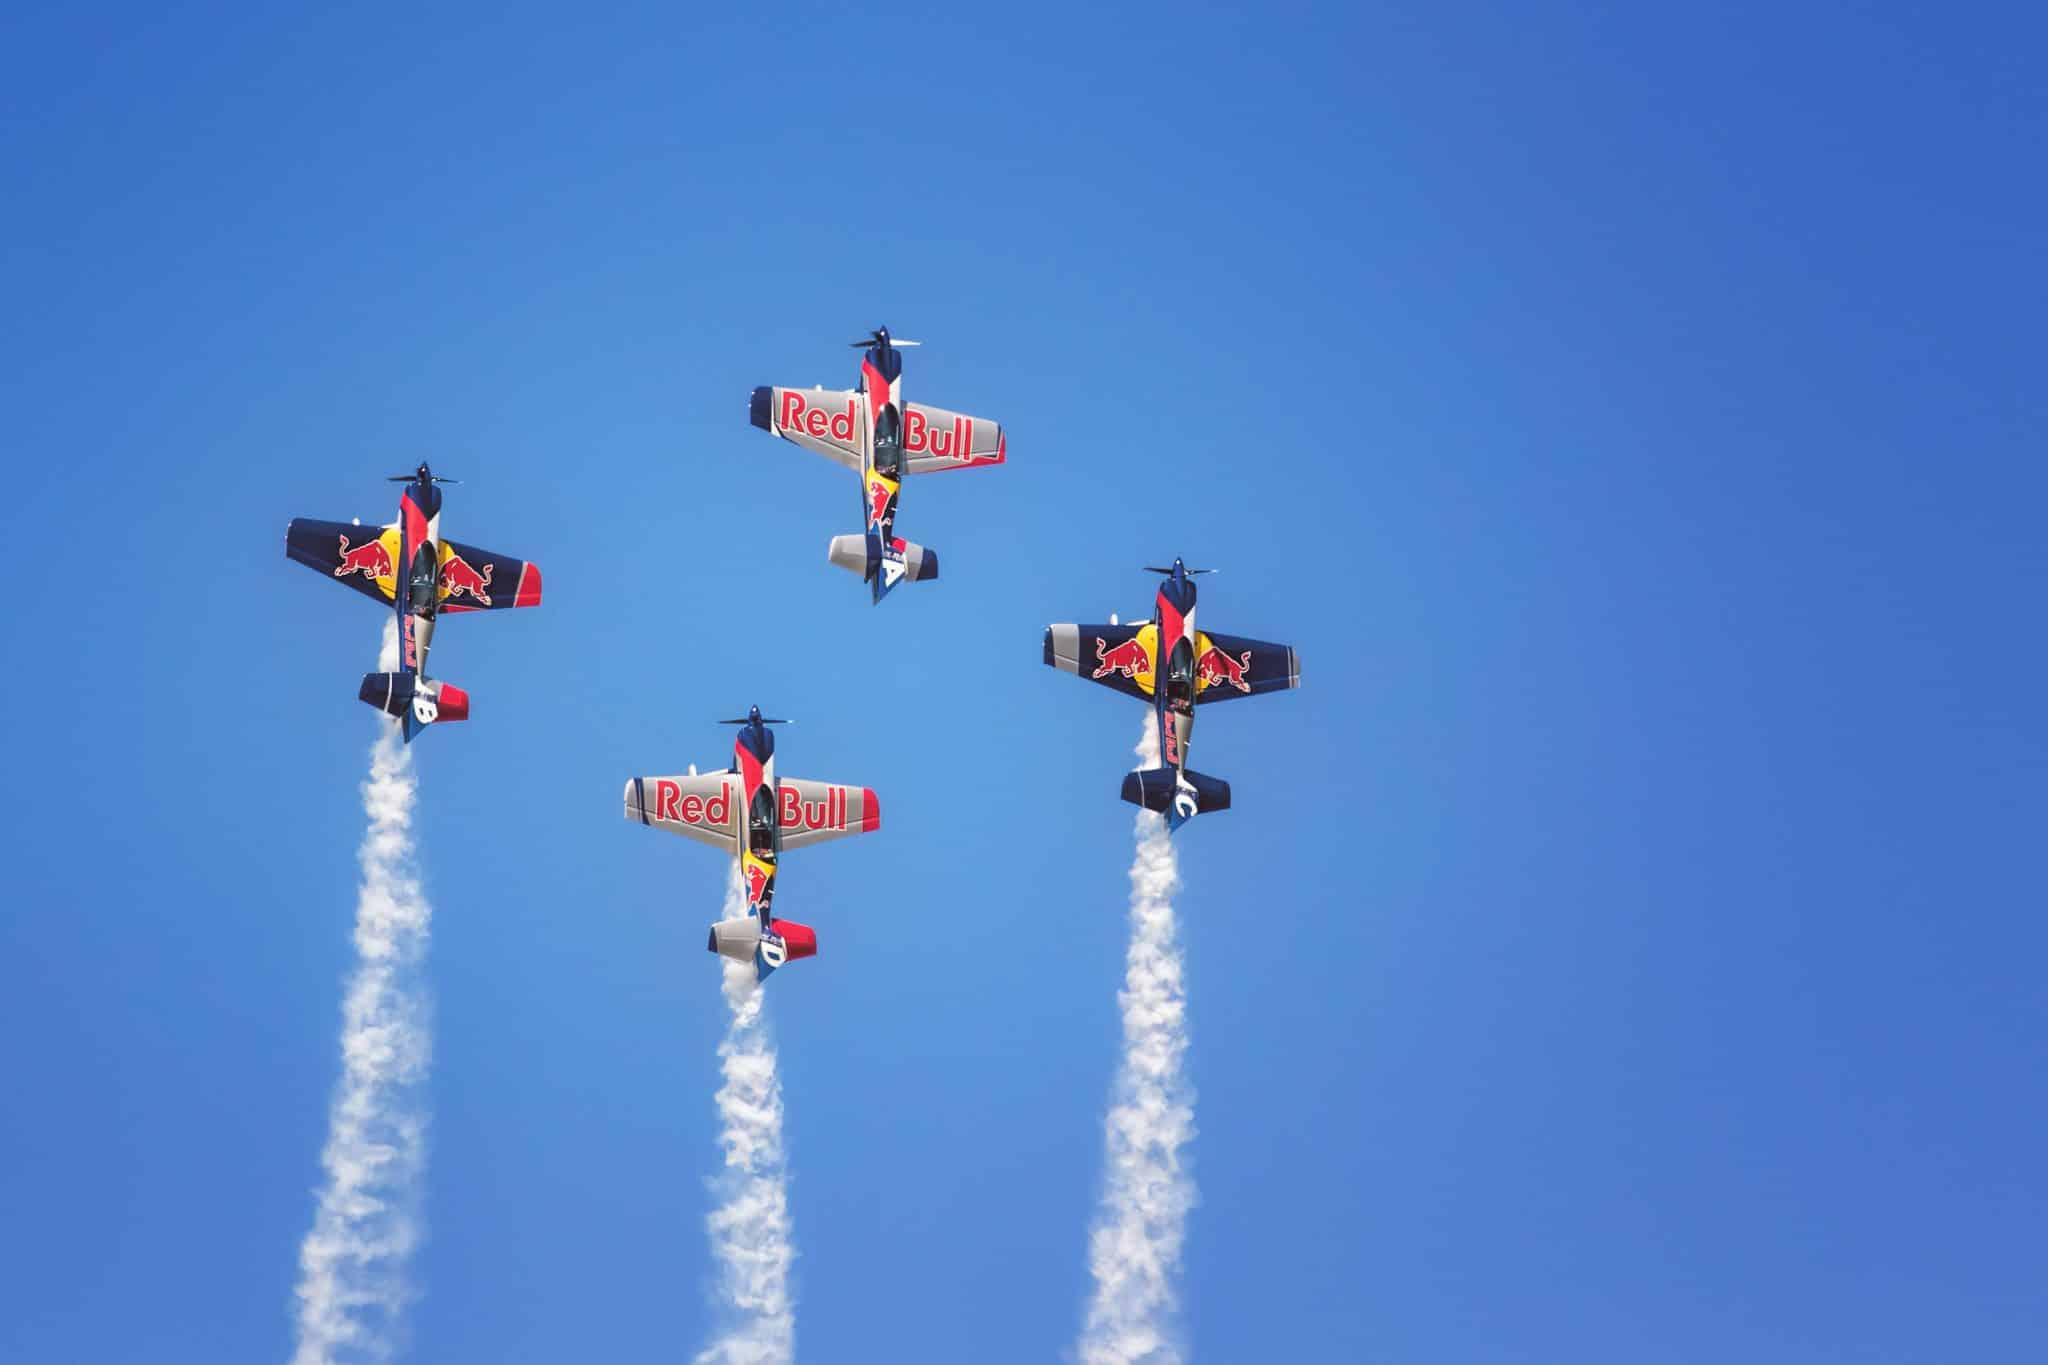 Sliac, Slovakia - August 28th 2016: The Flying Bulls Aerobatic Team Performs At Air Show SIAF 2016 International Air Fest At Sliac Airport.